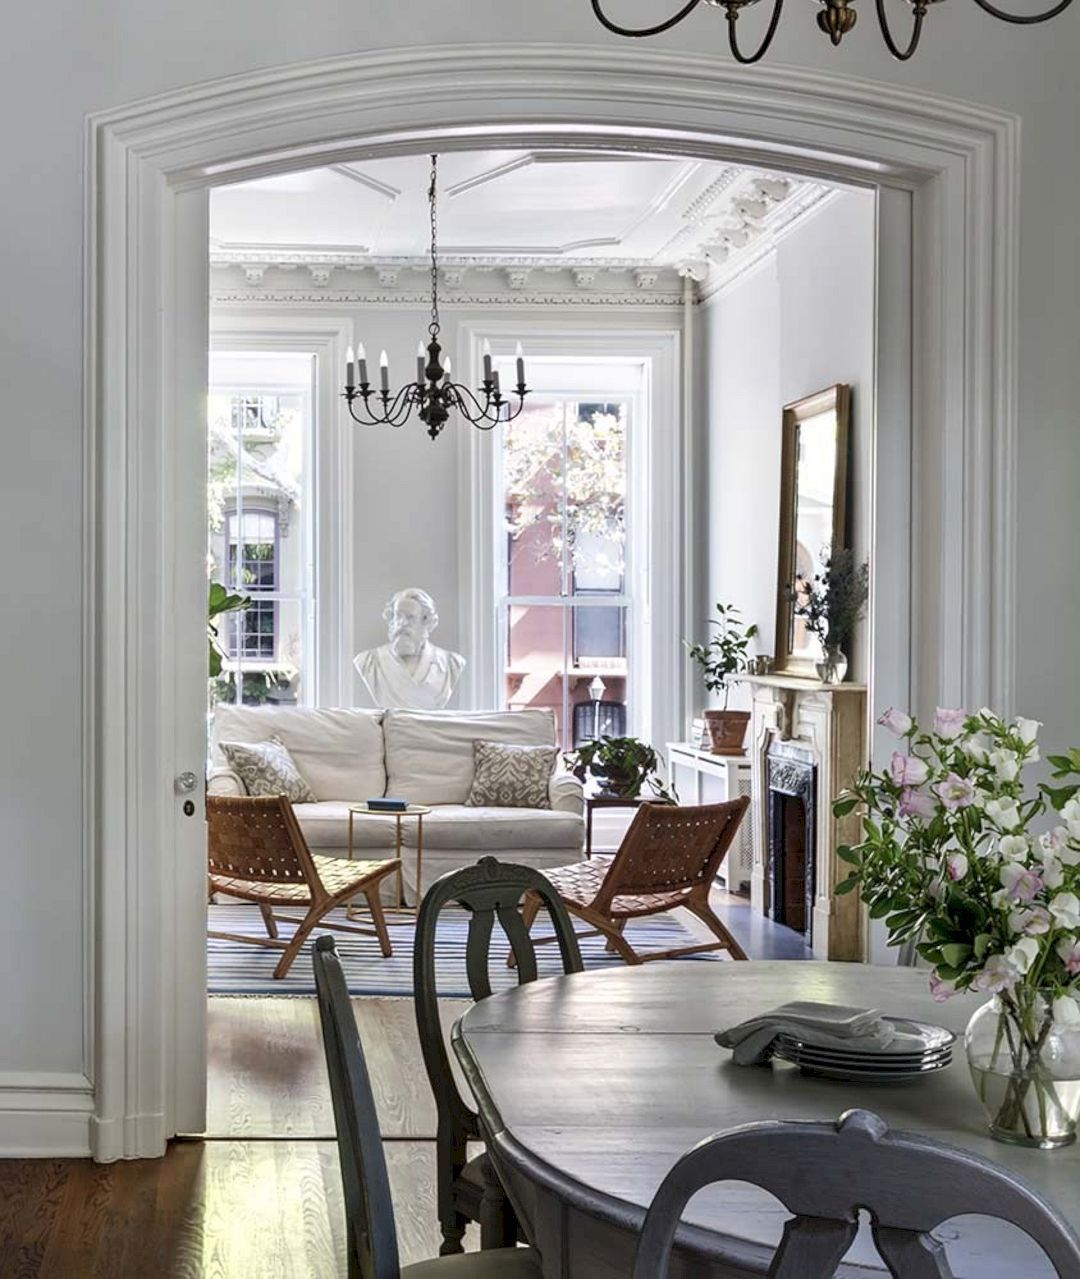 Designing Project For Clermont Street Brownstone Duplex Brownstone Interiors Brownstone Homes House Interior